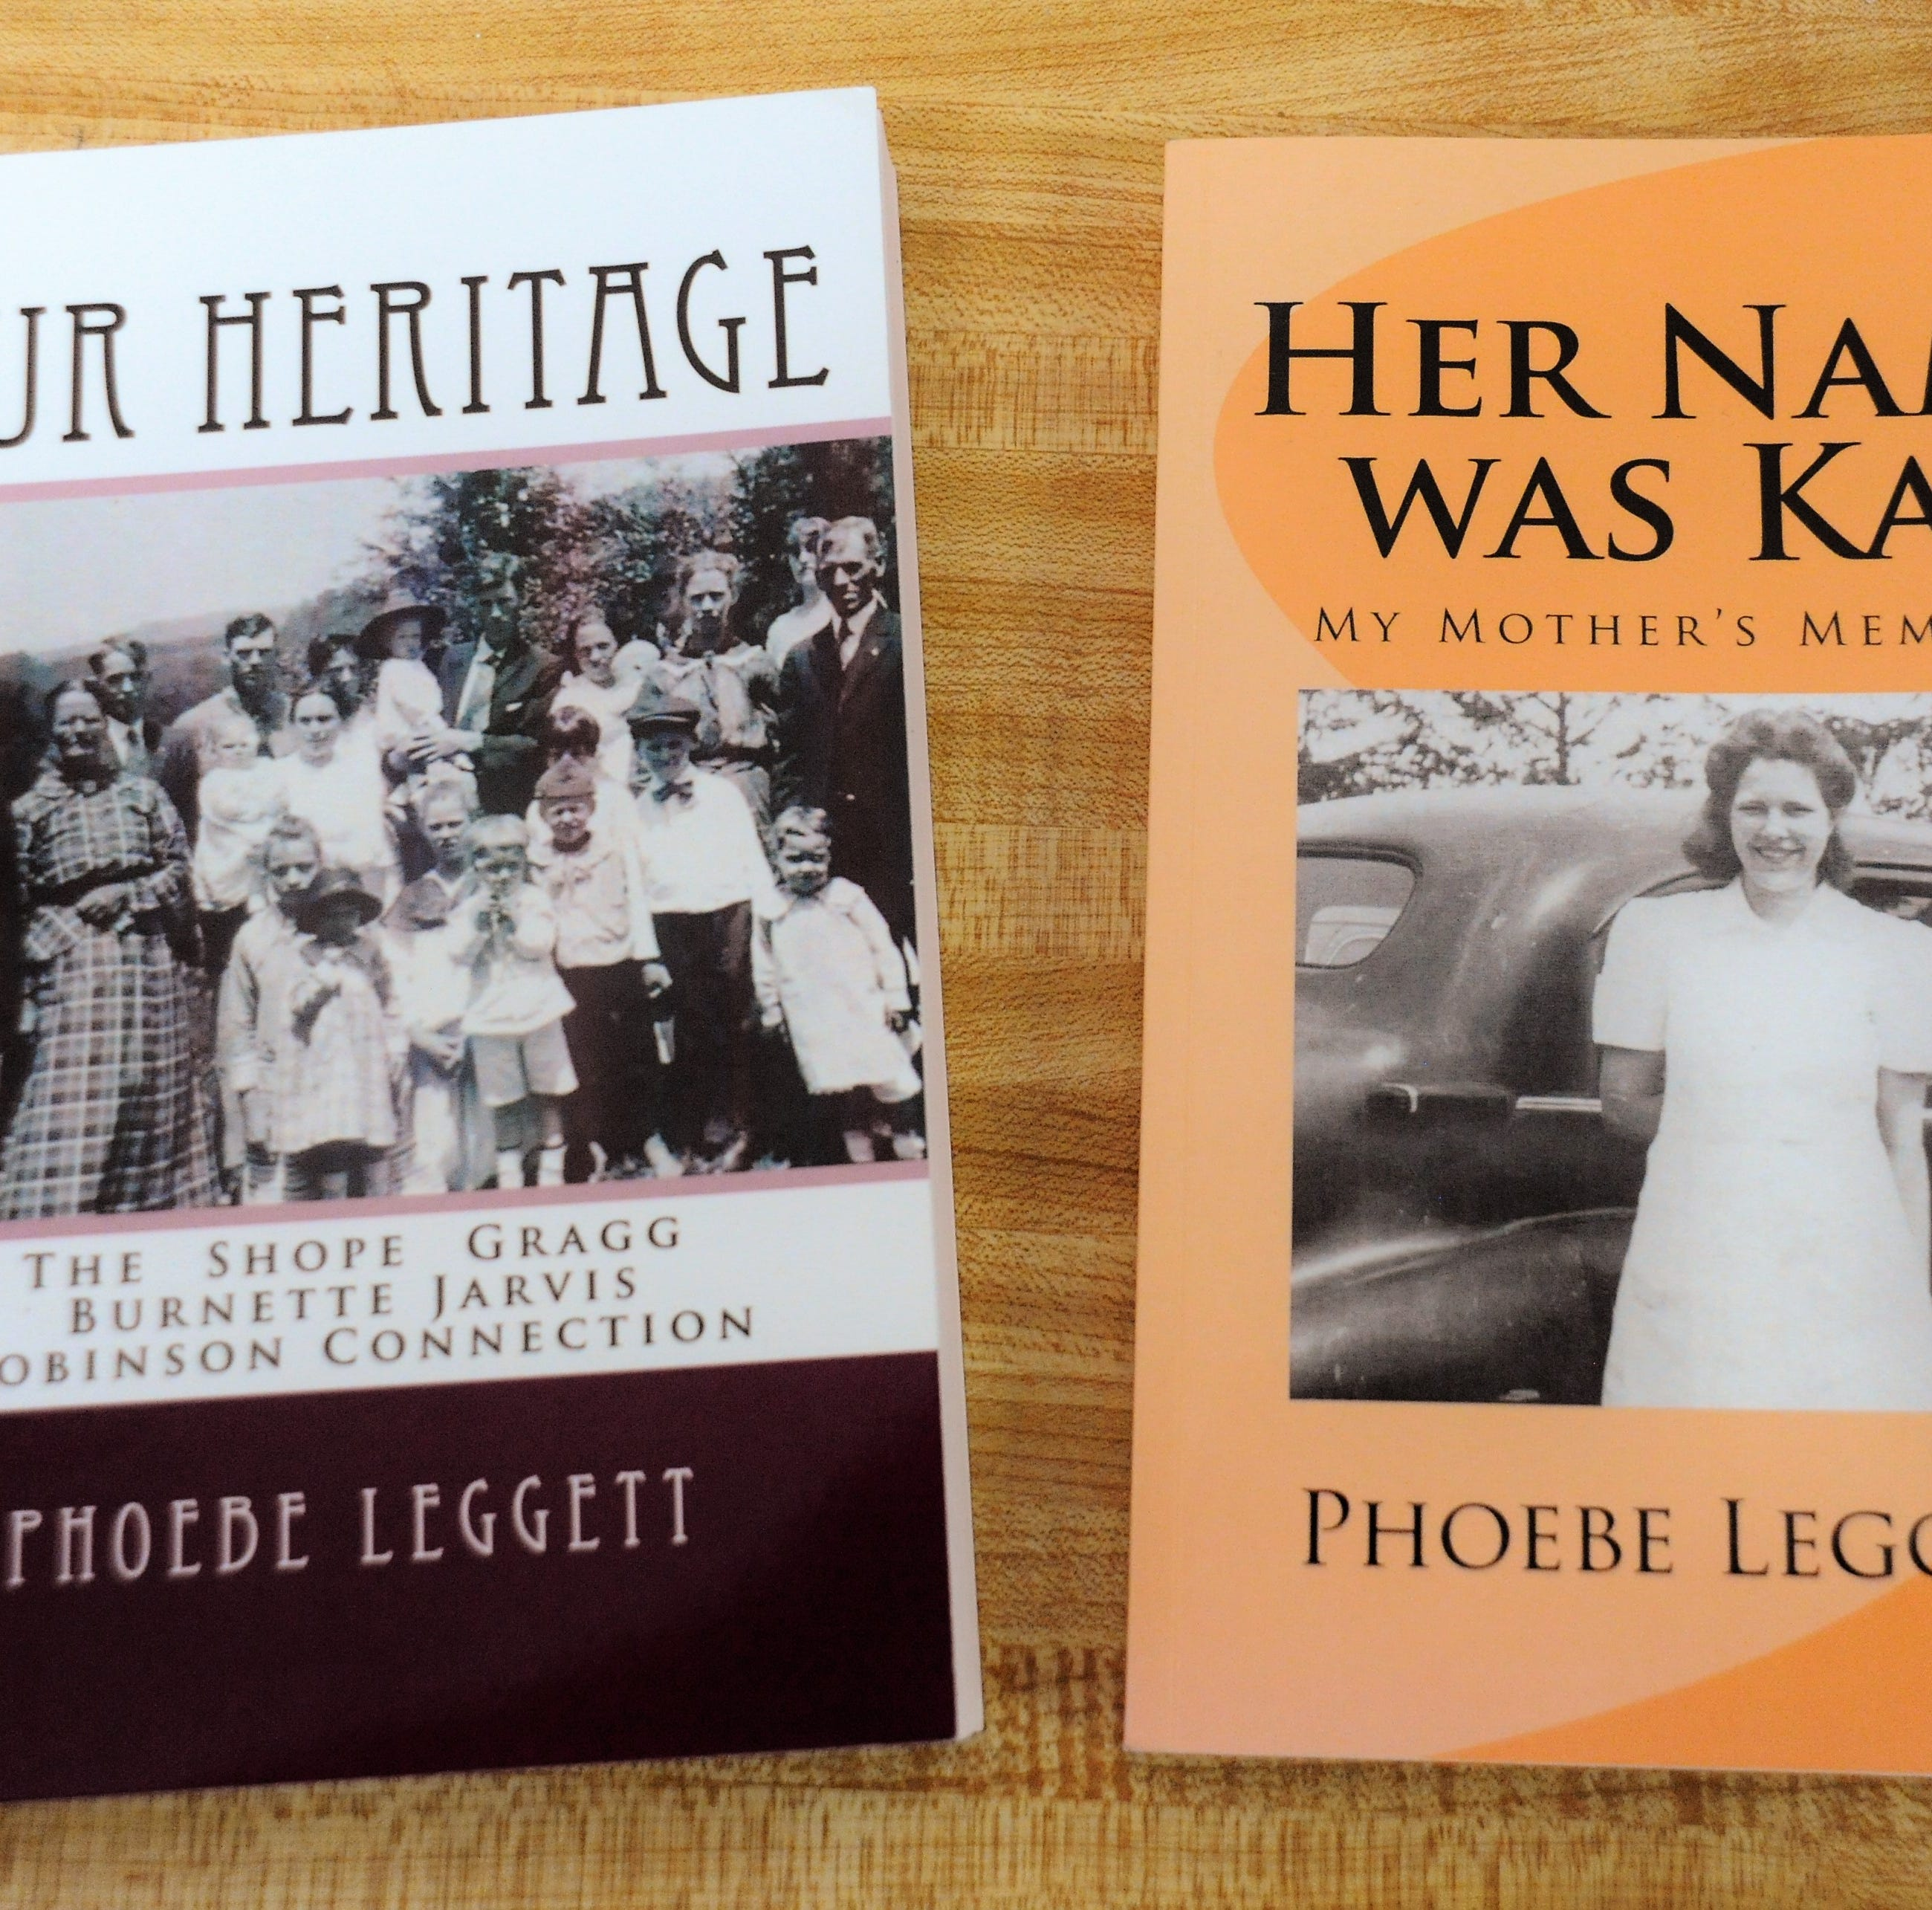 Latest books by Phoebe Leggett bring her back to her Swannanoa Valley roots